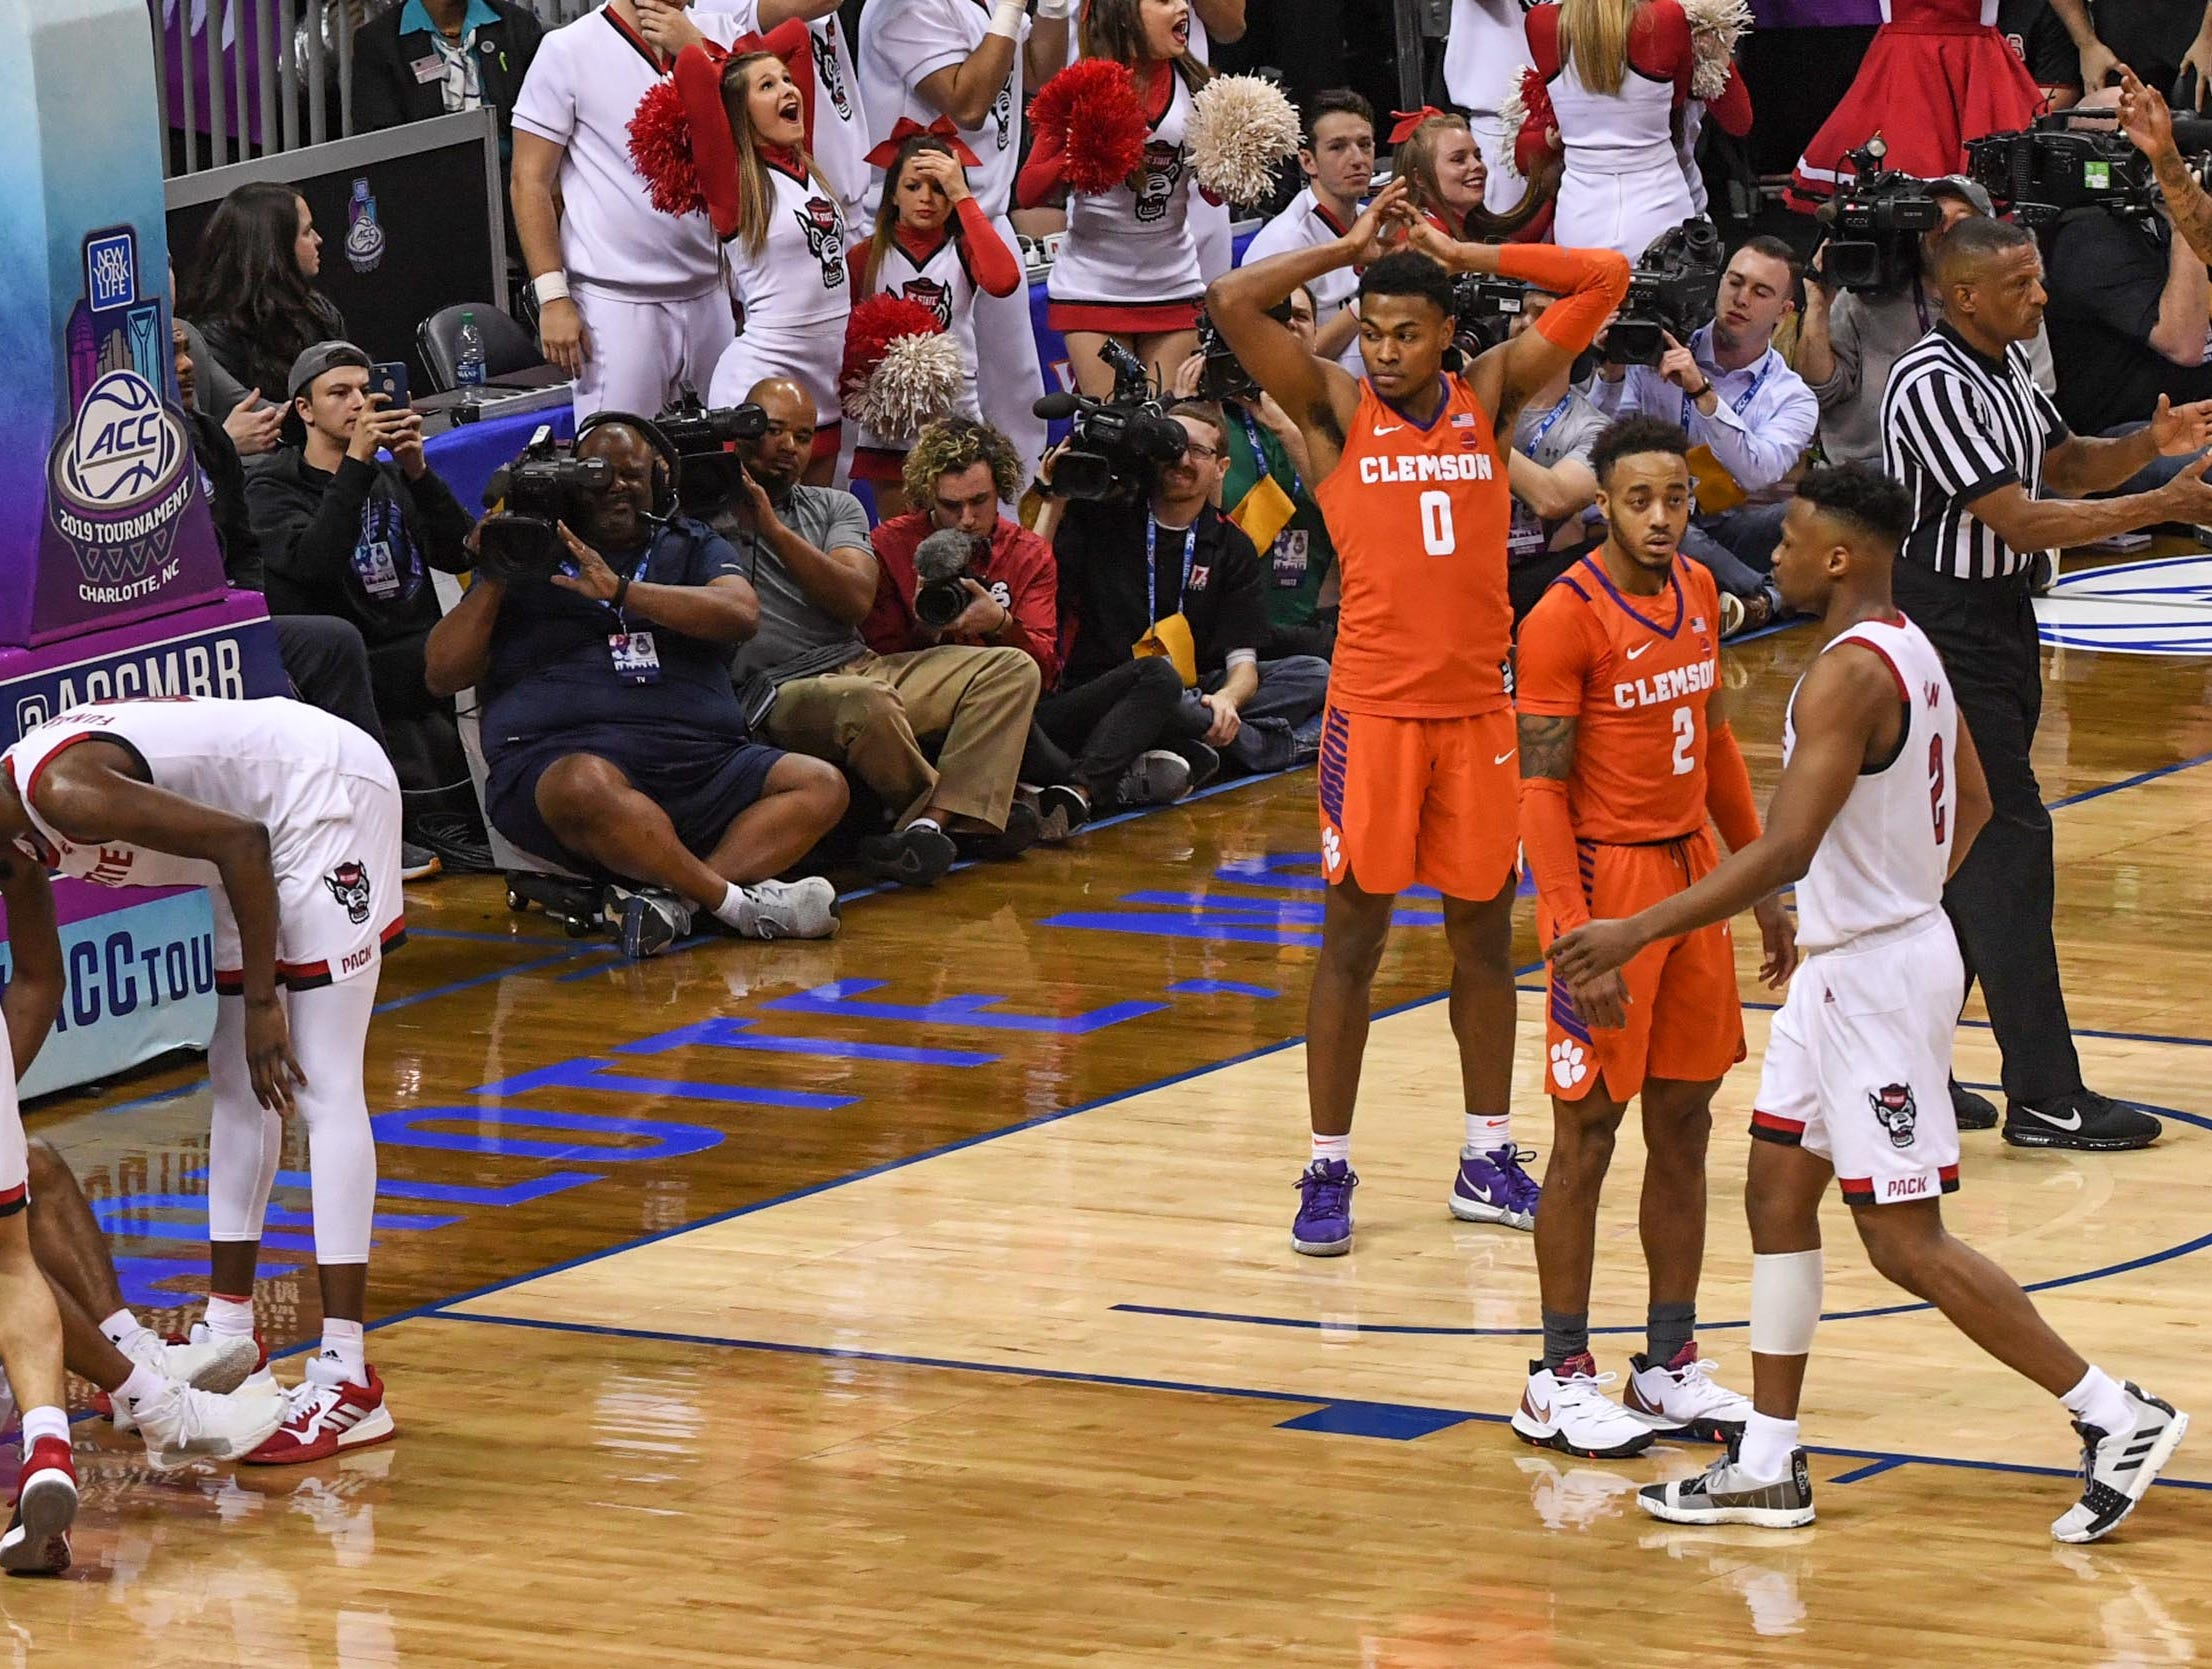 Clemson center Clyde Trapp (0), right, reacts after he was called for fouling N.C. State guard Markell Johnson(11) with less than three seconds in the game during the second half at the Spectrum Center in Charlotte, N.C. Tuesday, March 12, 2019. Johnson made both free throws and N.C. State won 59-58.